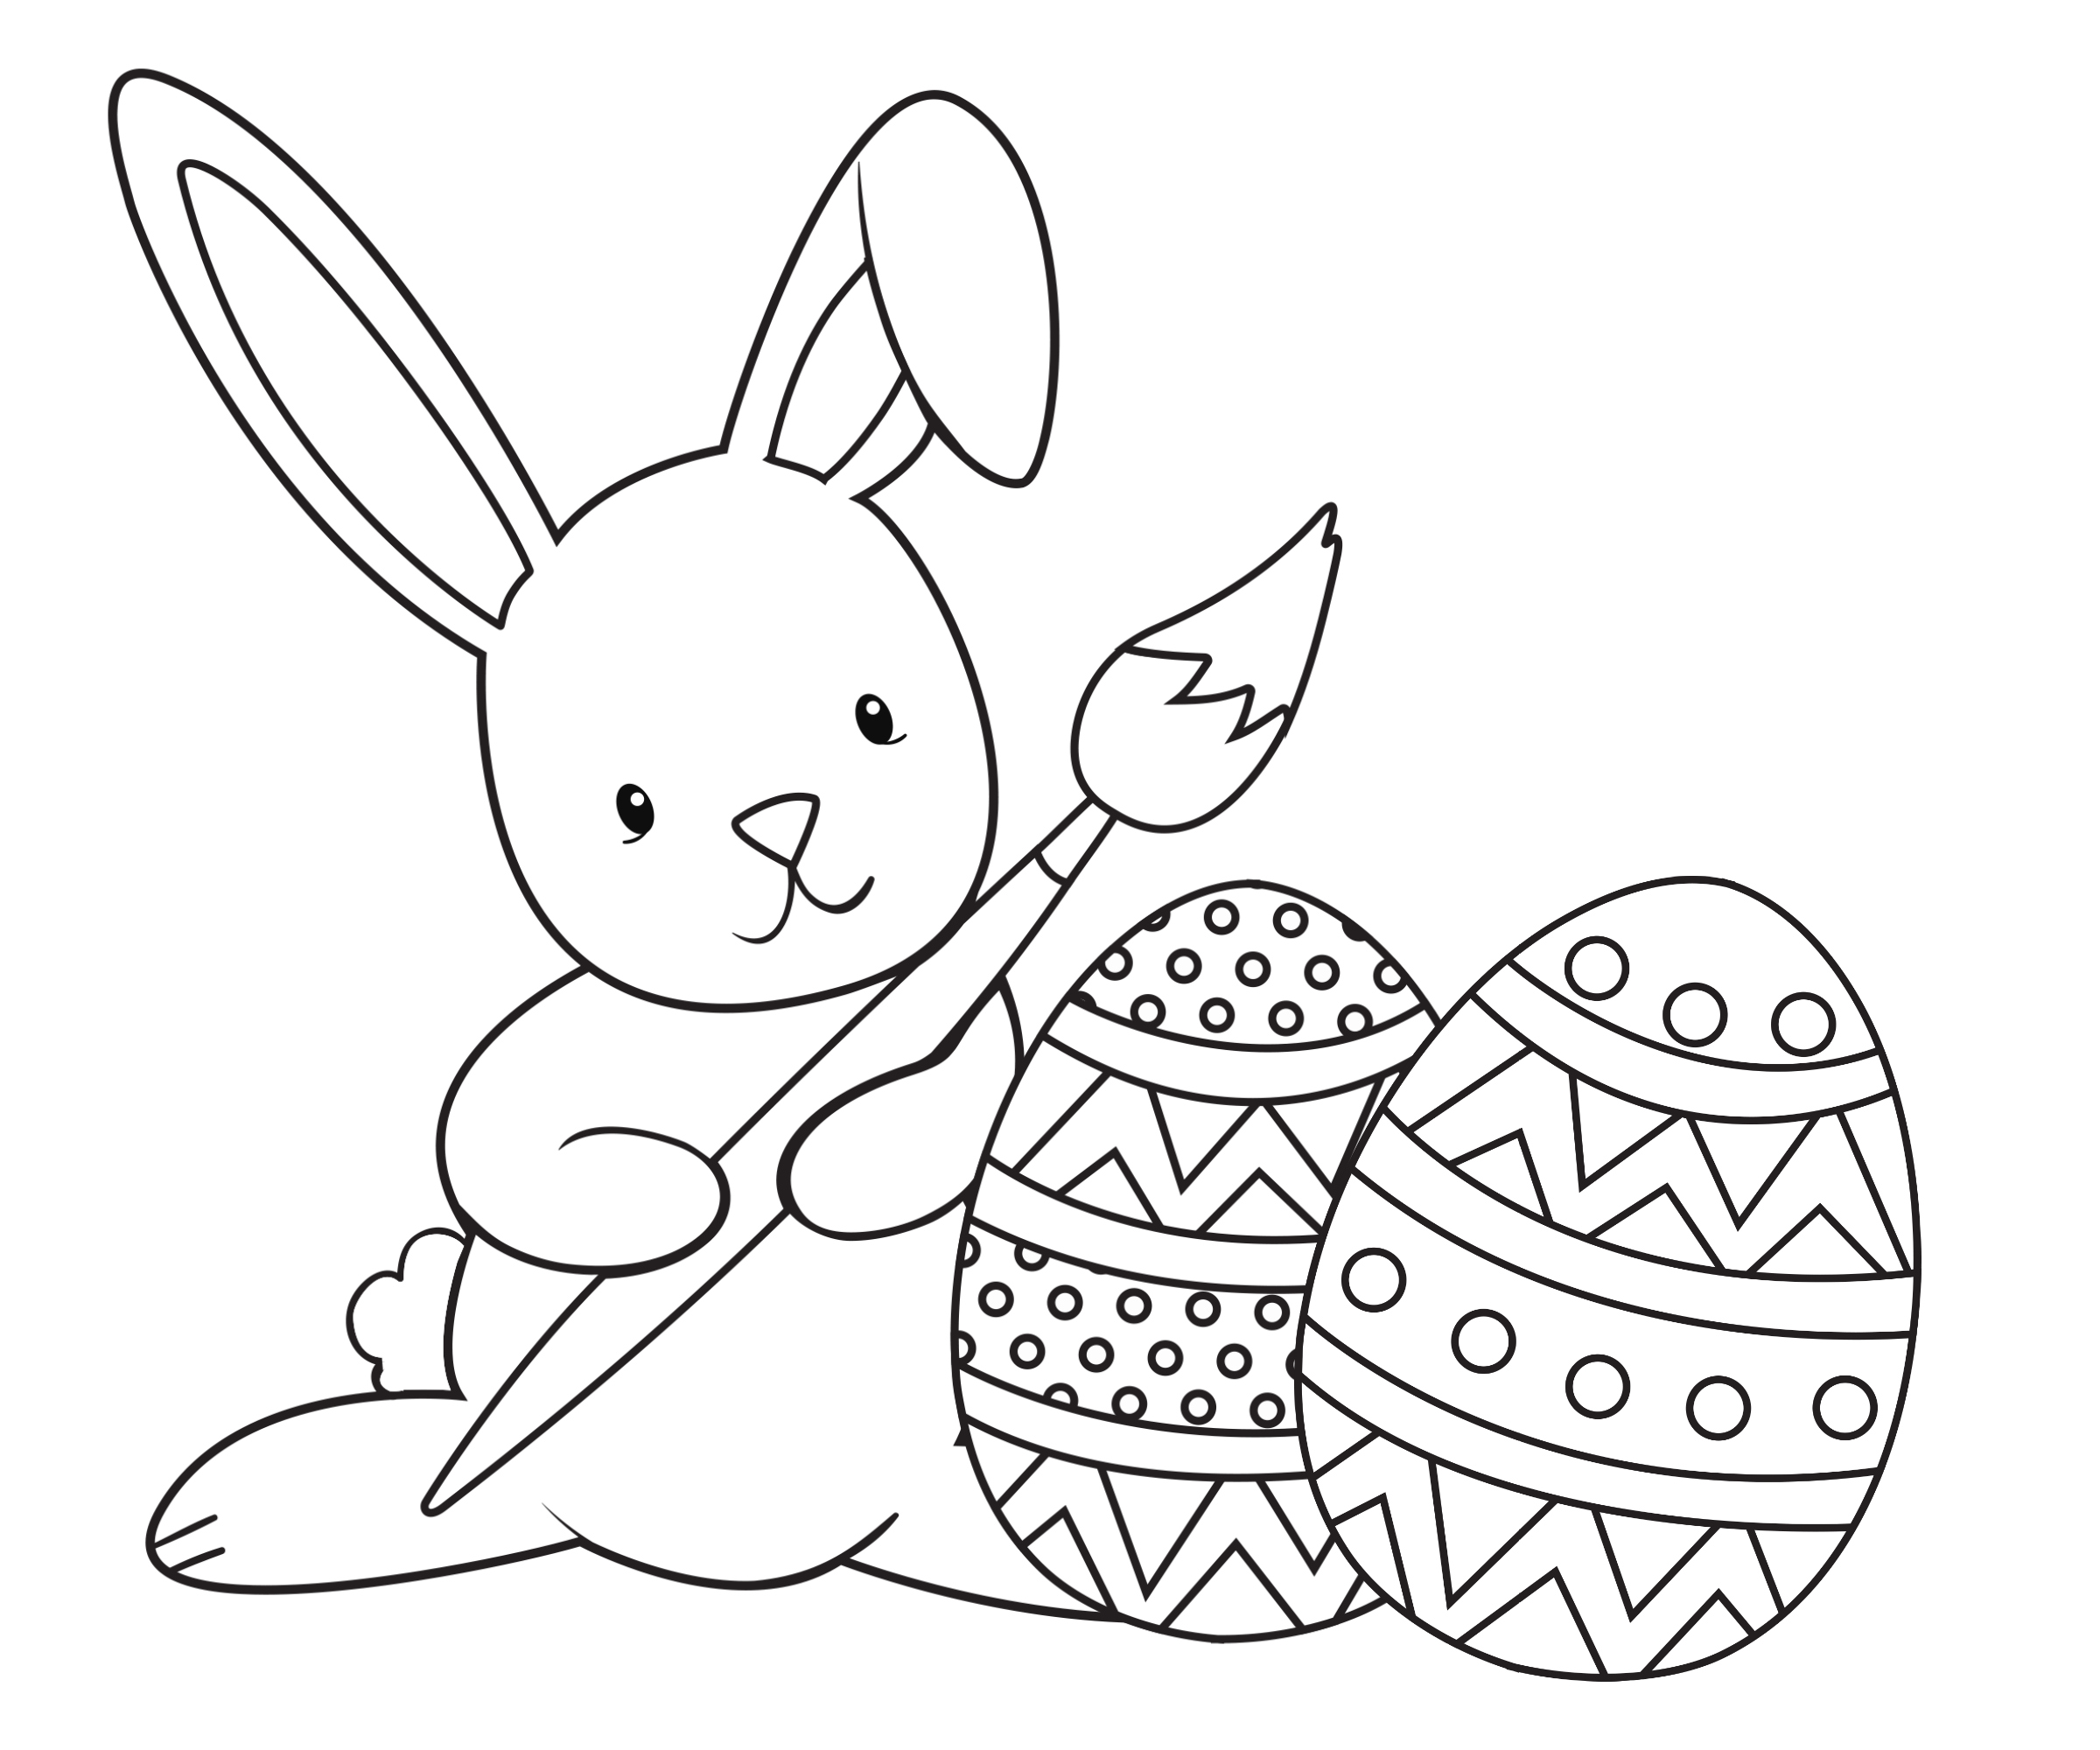 Easter Bunny Coloring Pages - Kidsuki